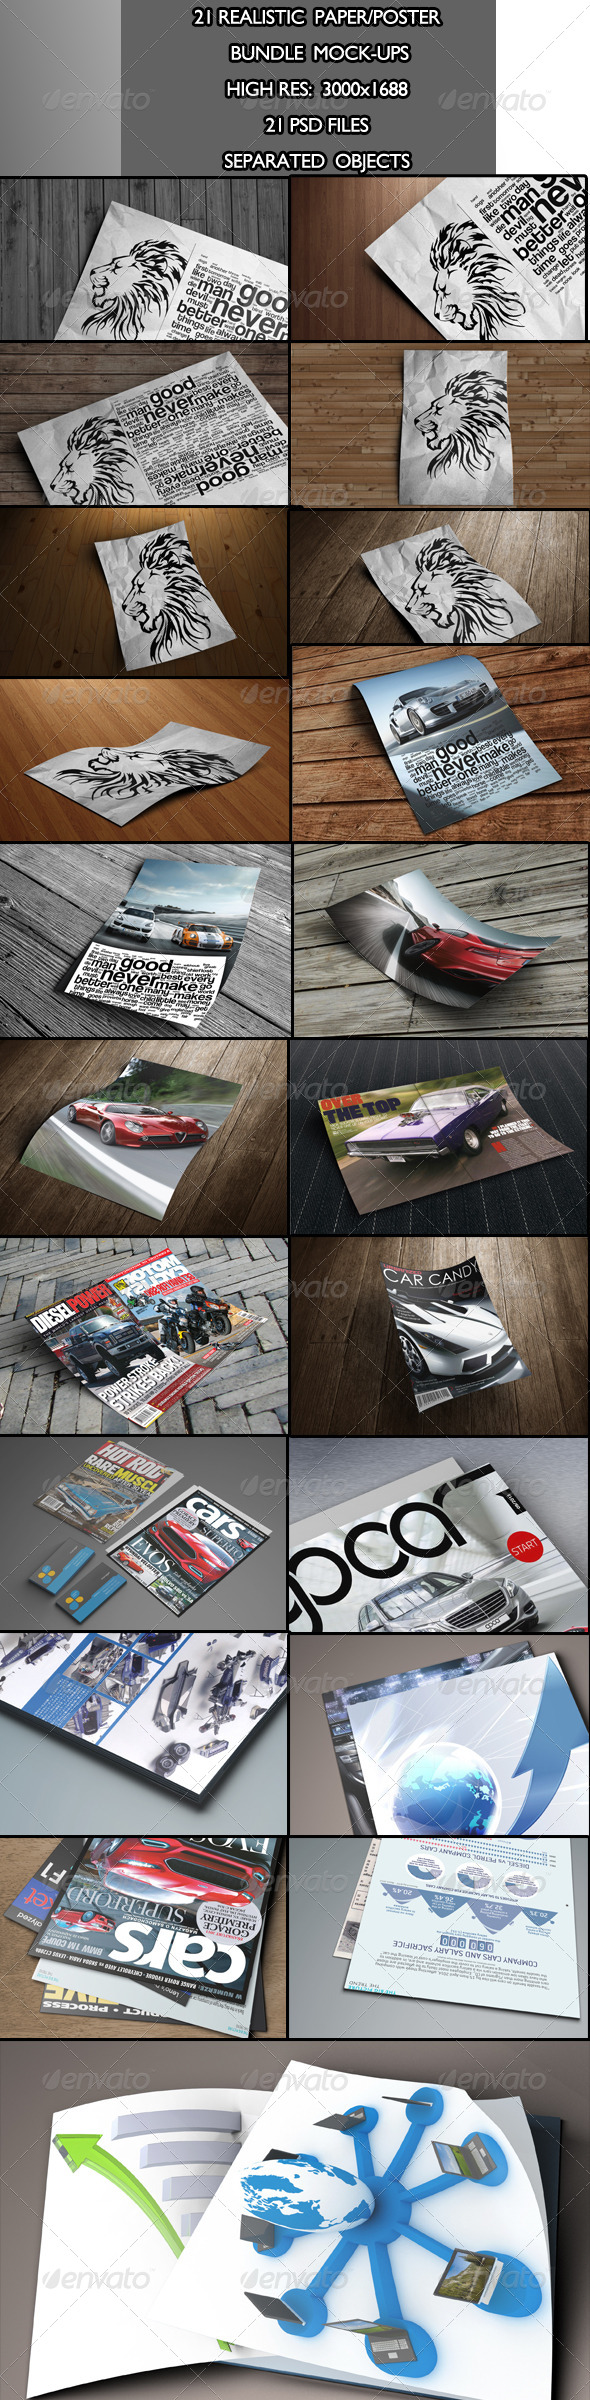 Realistic Paper/Poster Bundle Mock-Ups - Product Mock-Ups Graphics